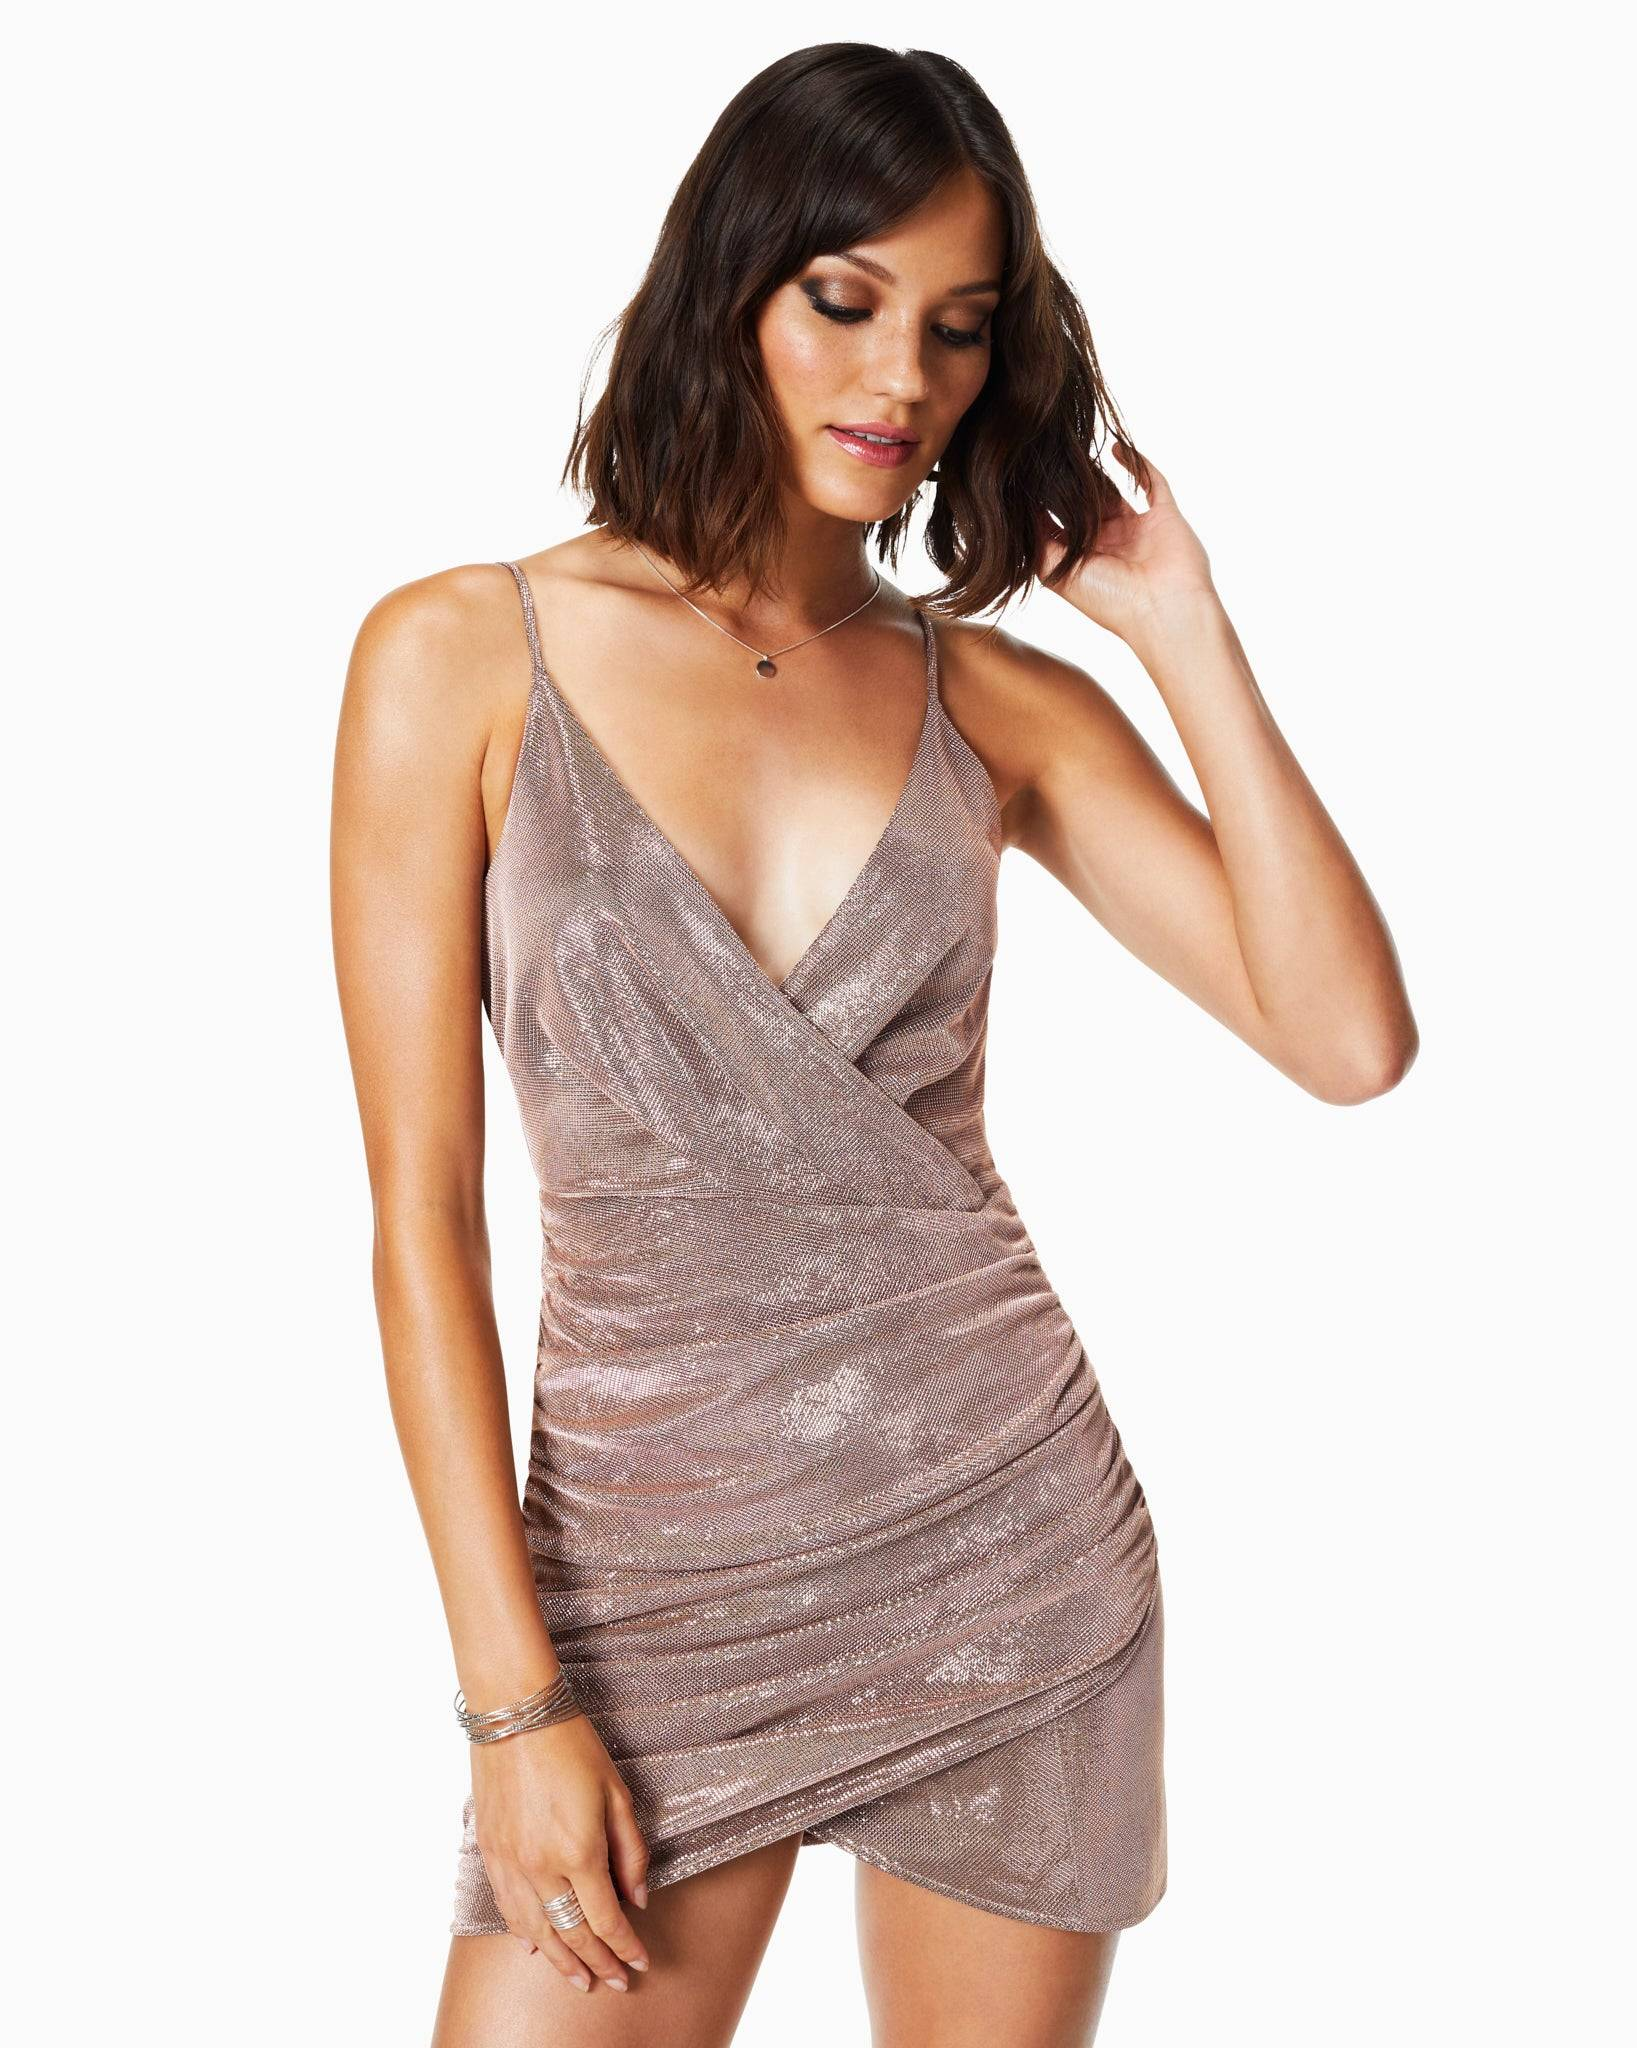 Madilyn Ruched Mini Dress in Holiday Blush - Holiday Blush - Size: 00